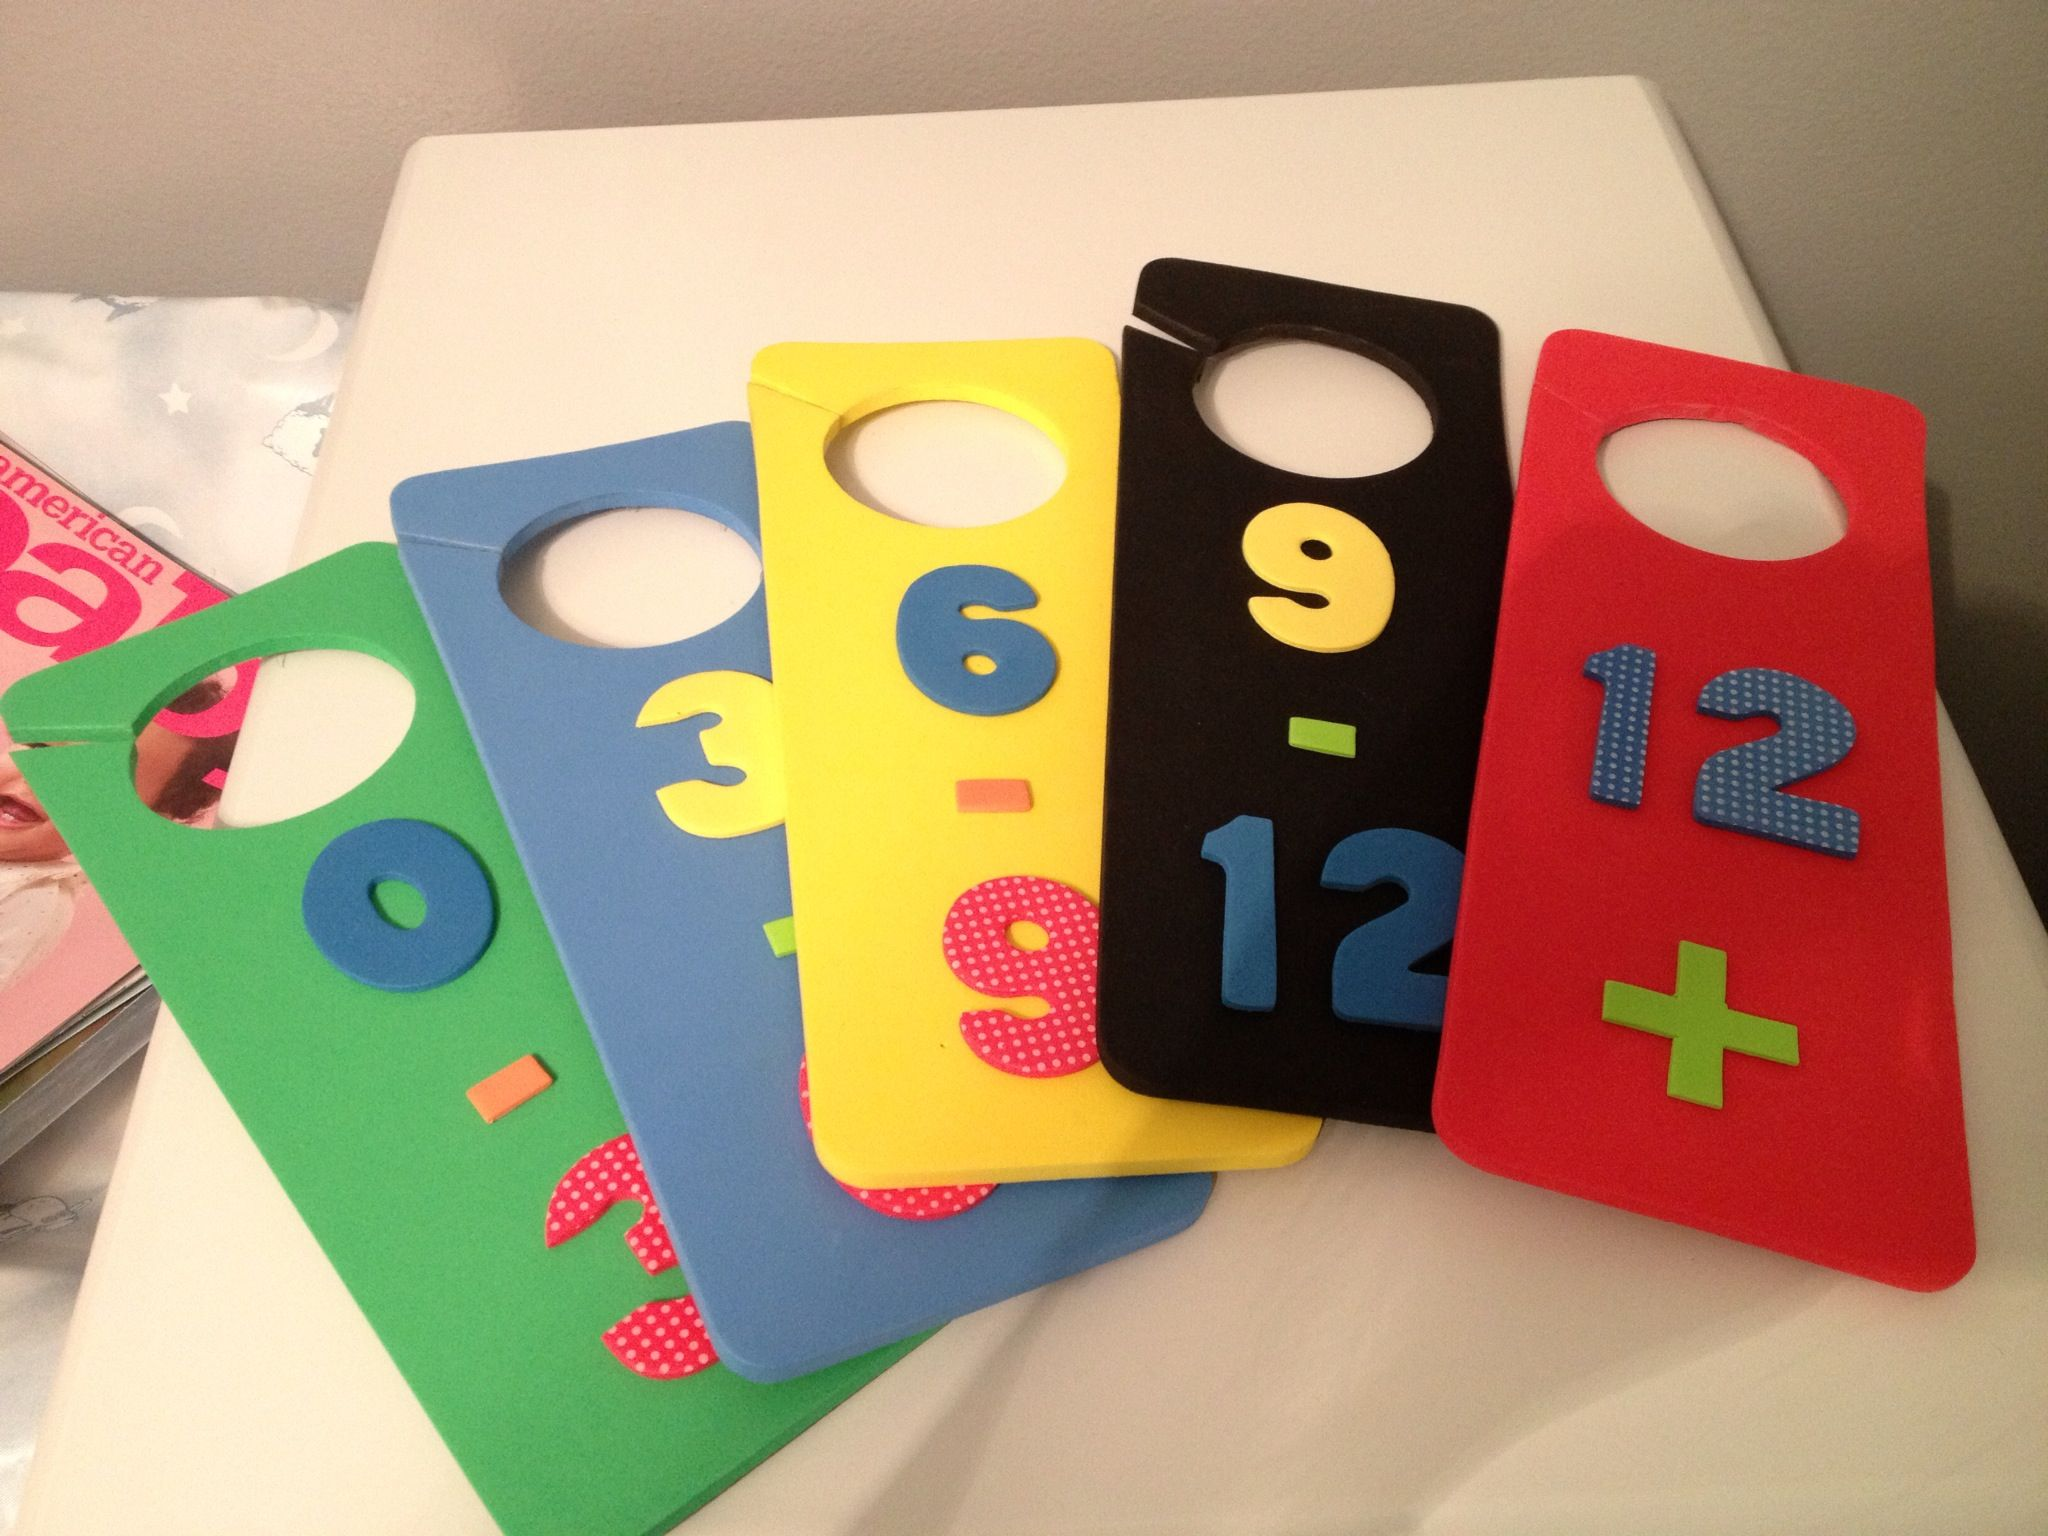 Inexpensive closet dividers  Foam door hangers with numbers pasted on both sides.